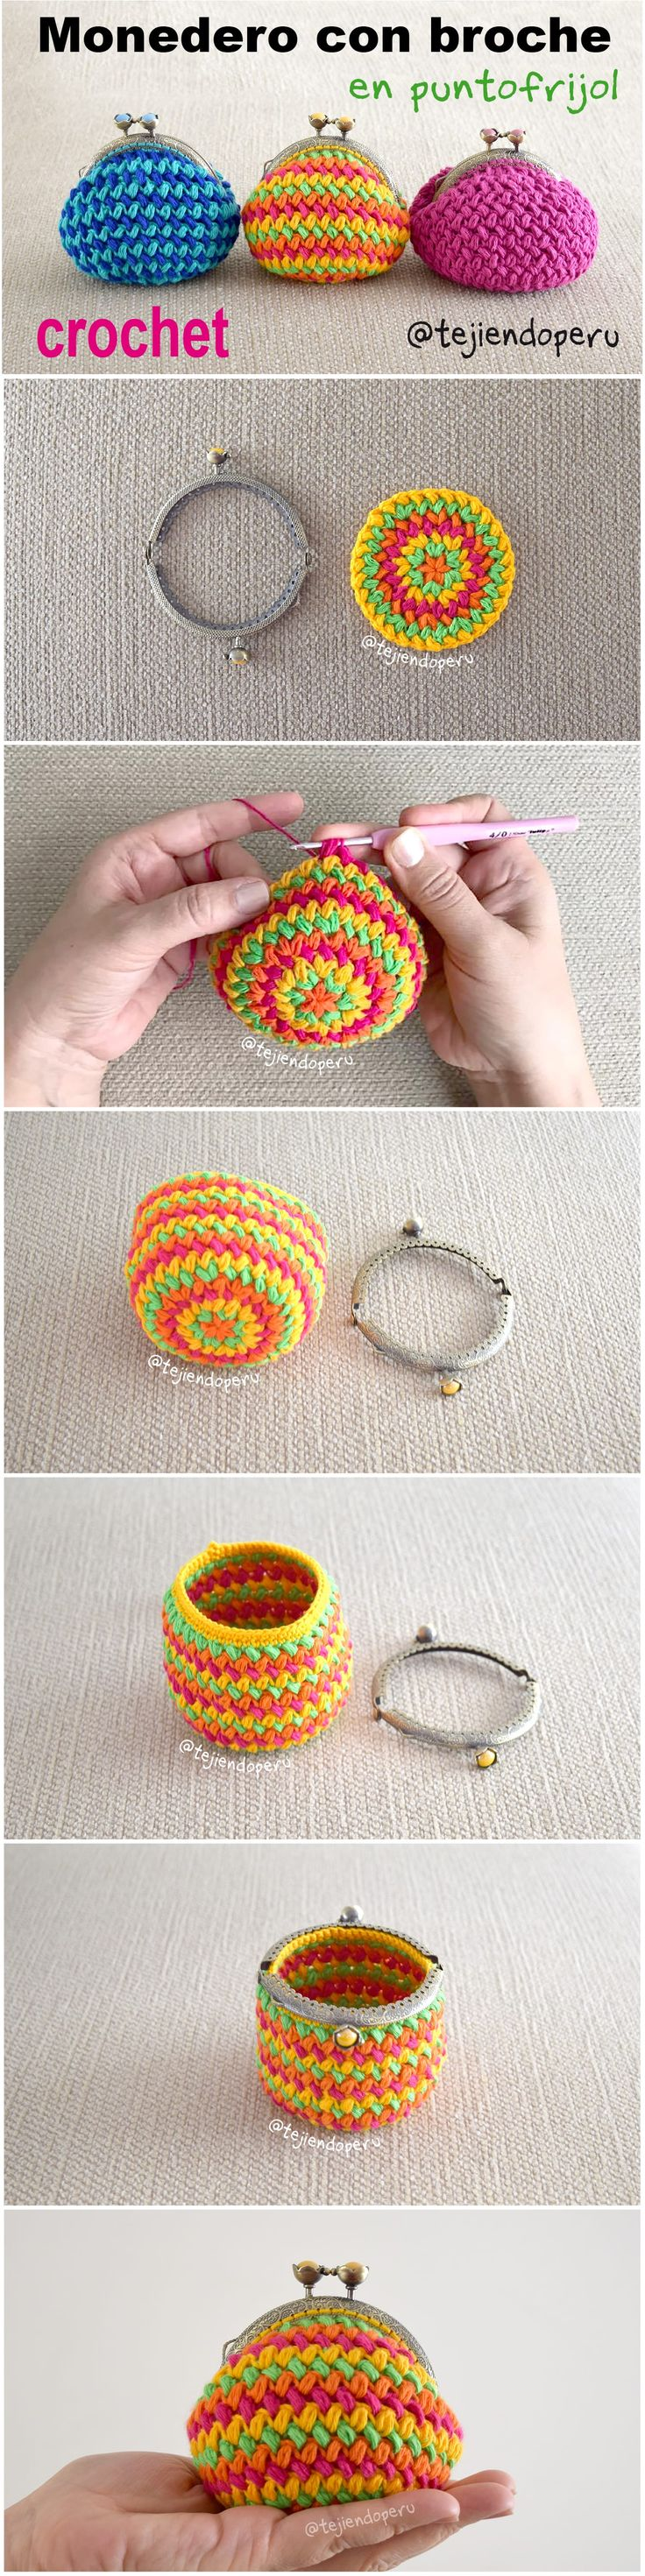 Monederos con broche tejidos a crochet en punto frijol o bean stitch paso a paso en video! :)   Supernatural Style